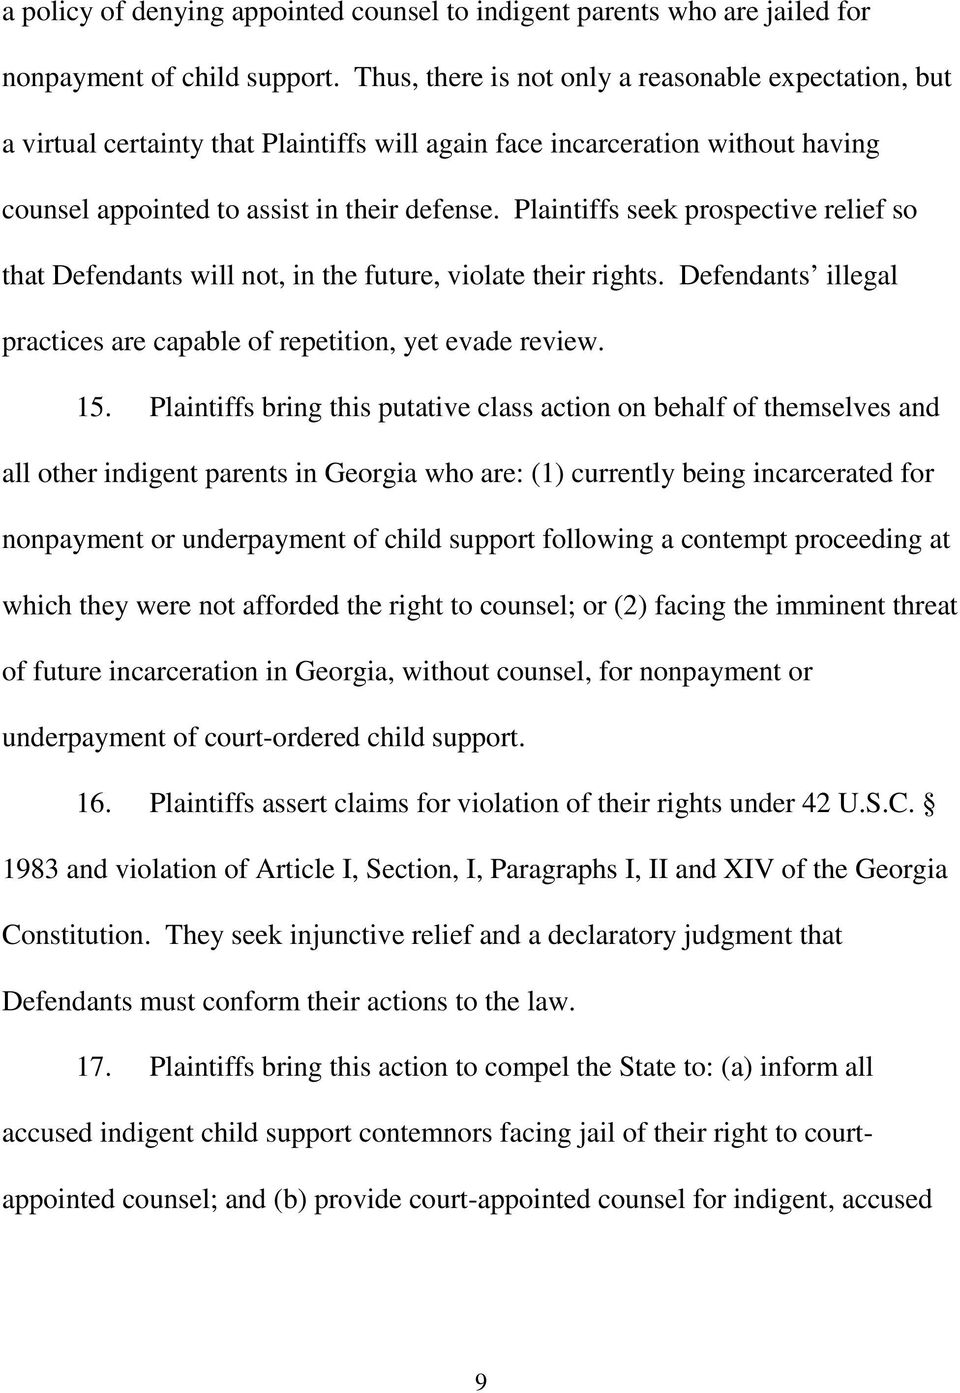 Plaintiffs seek prospective relief so that Defendants will not, in the future, violate their rights. Defendants illegal practices are capable of repetition, yet evade review. 15.